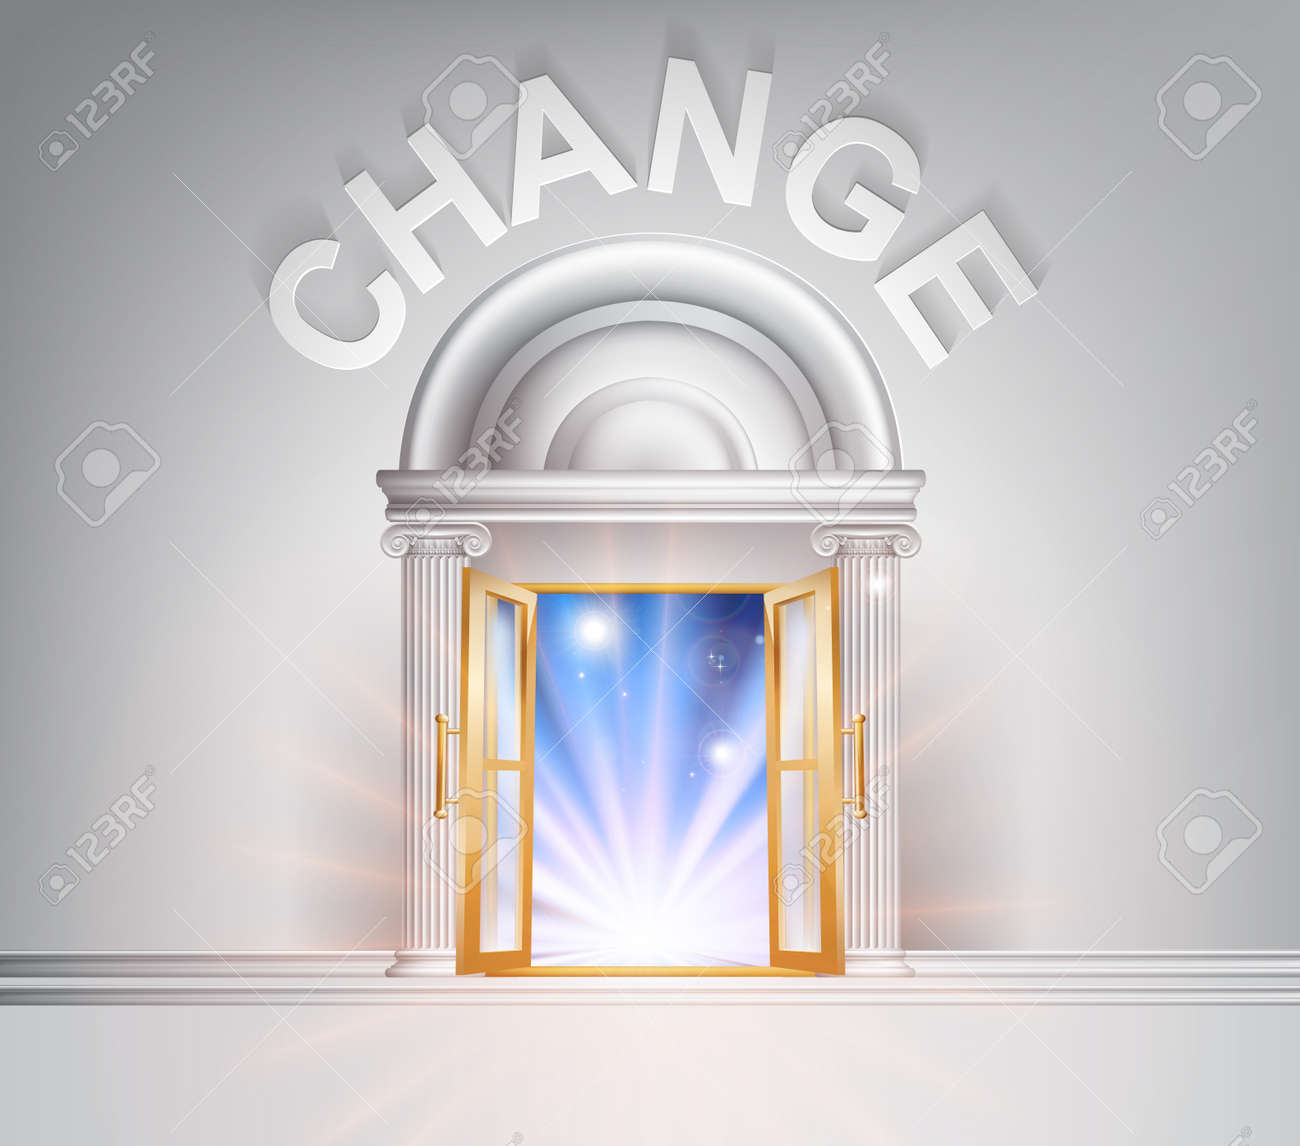 Change door concept of a fantastic white marble door with columns with light streaming through it. Stock Vector - 24900259